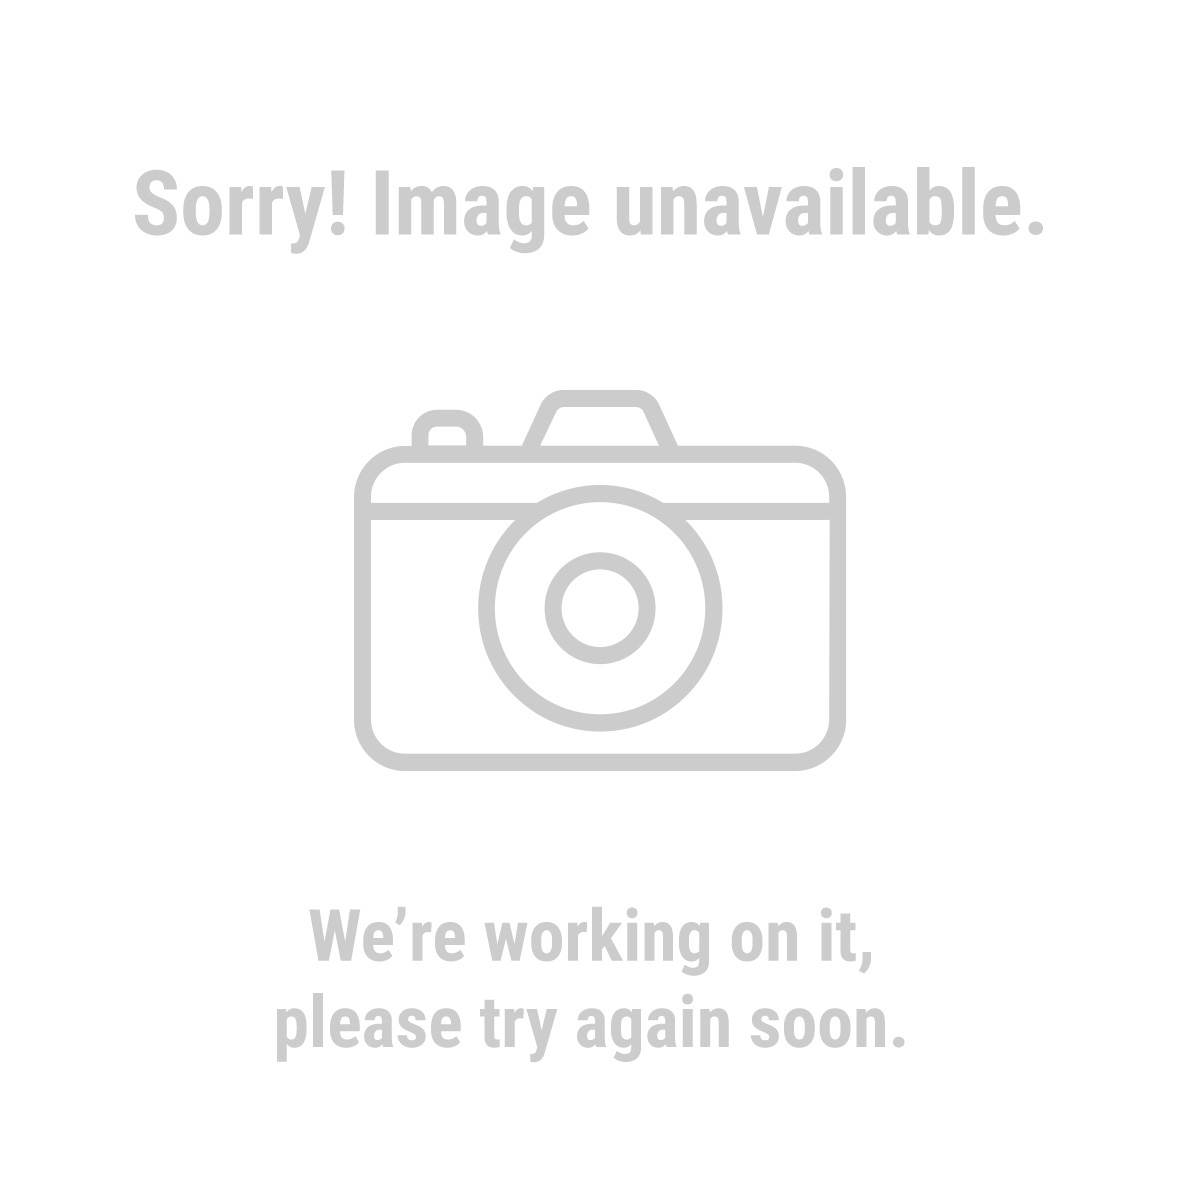 Central-Machinery 69738 6.5 HP Plate Compactor (179cc)